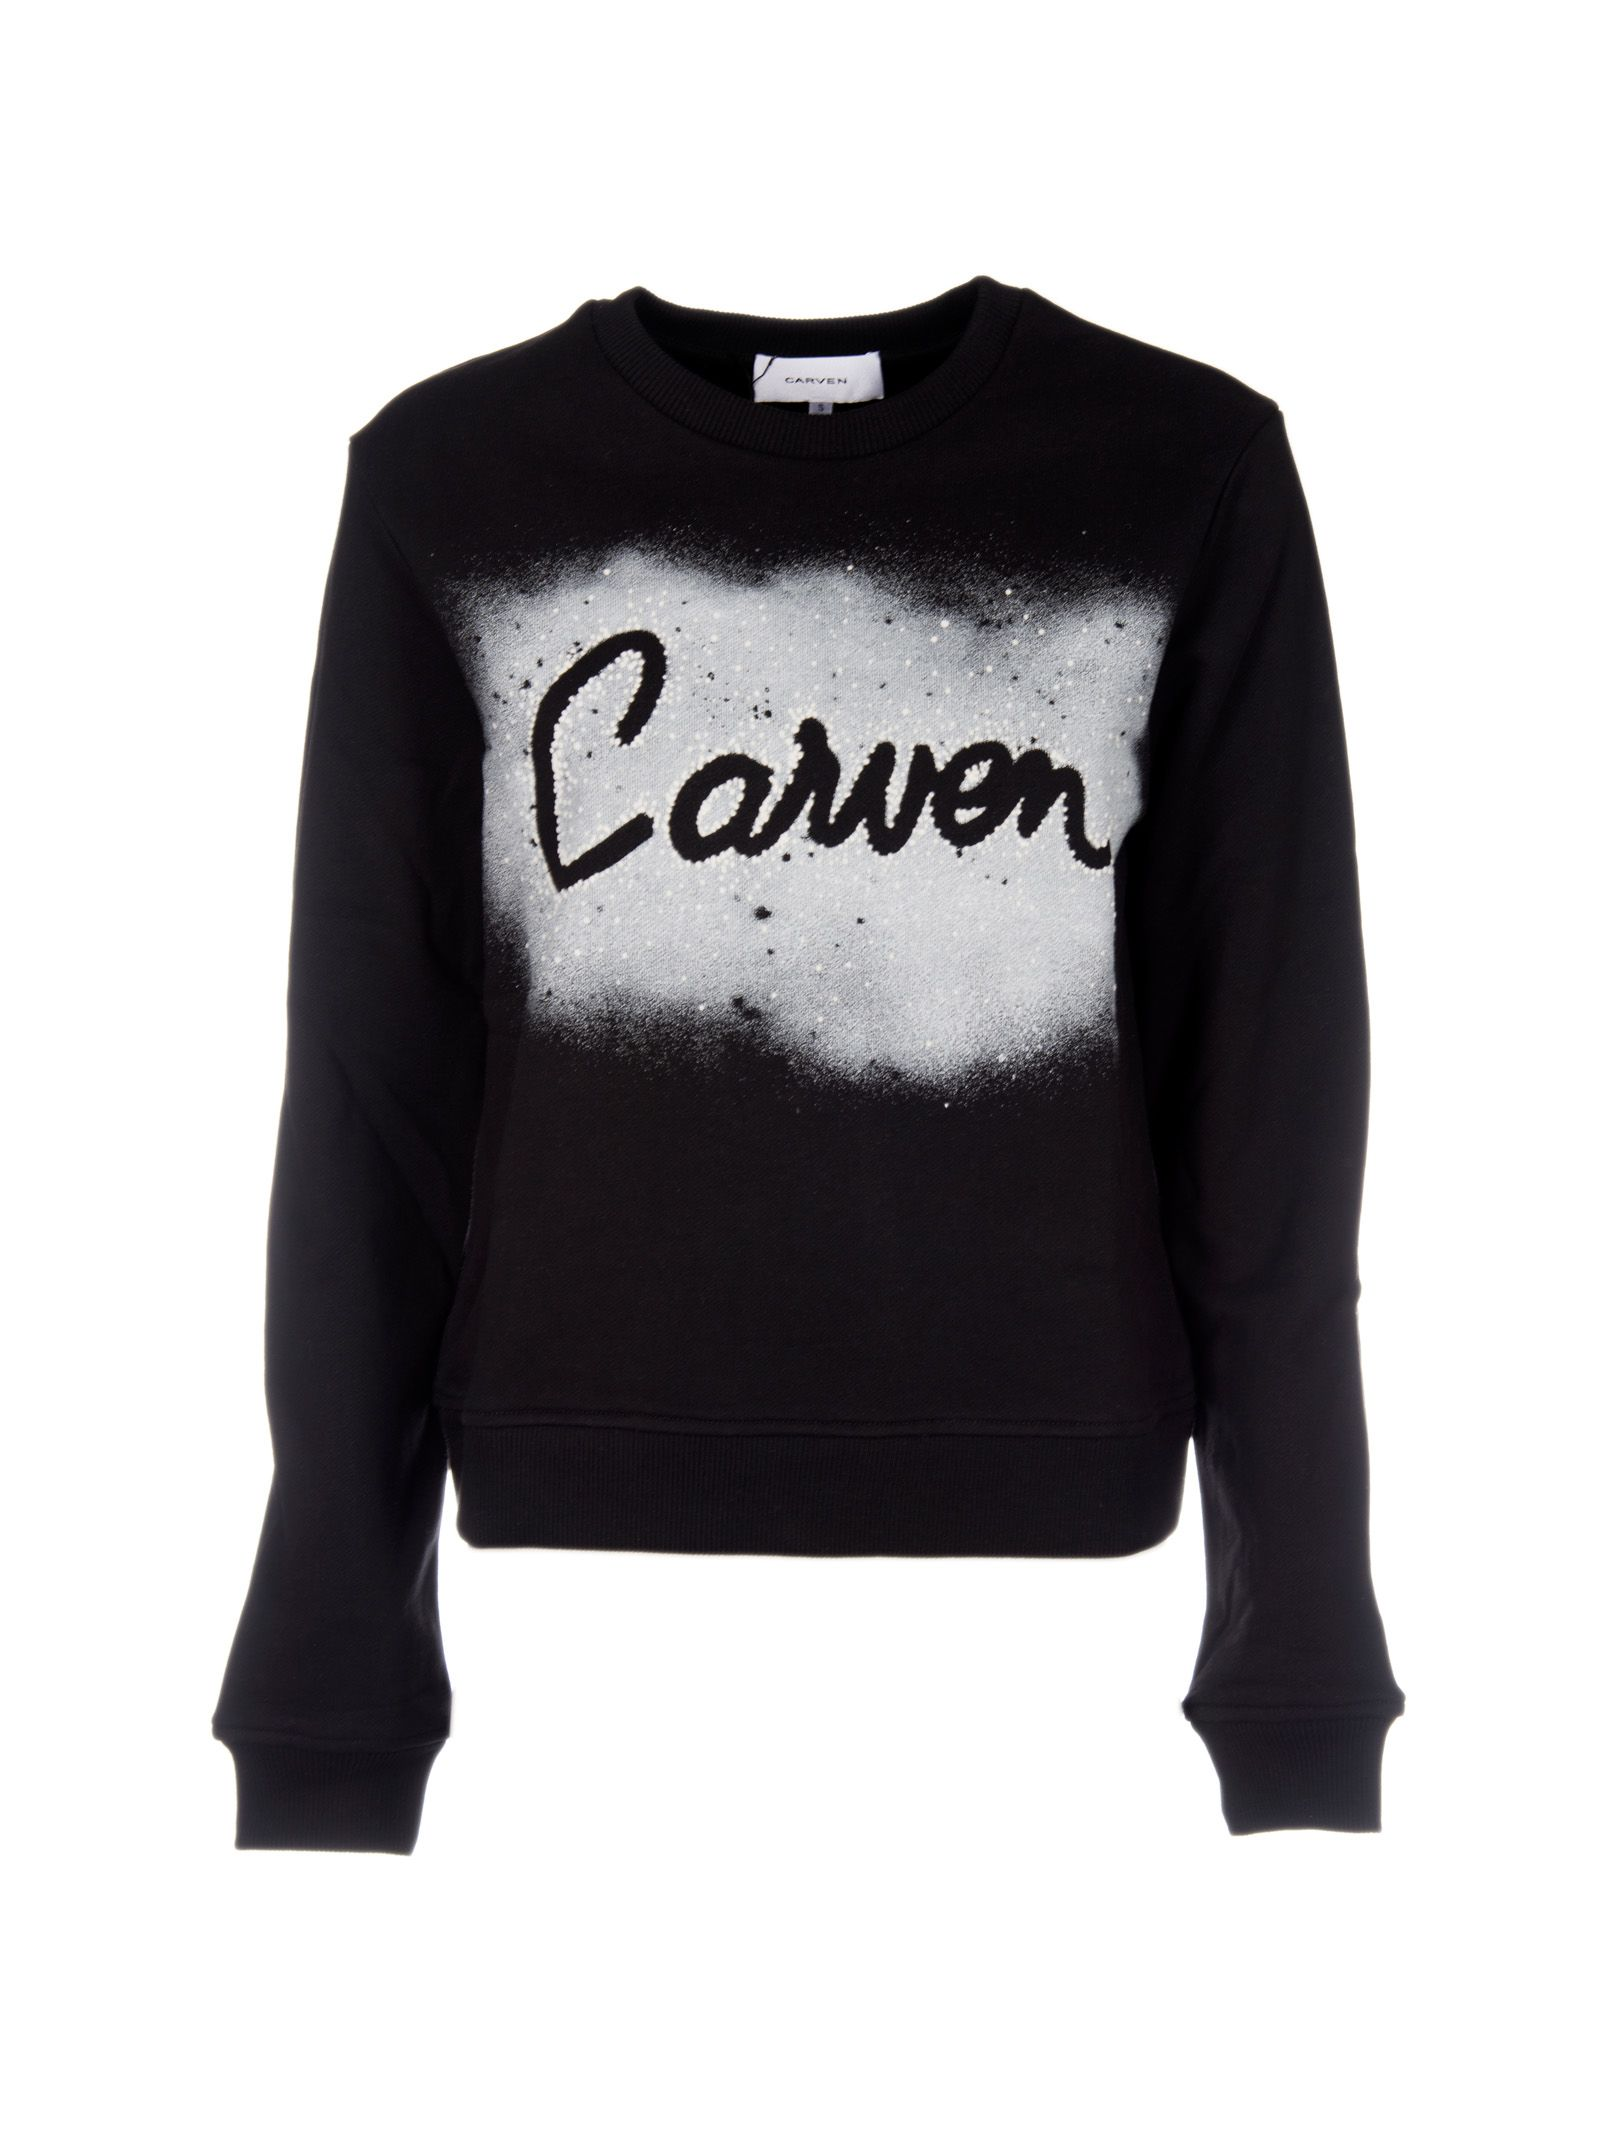 Carven Spray Print Logo Sweatshirt